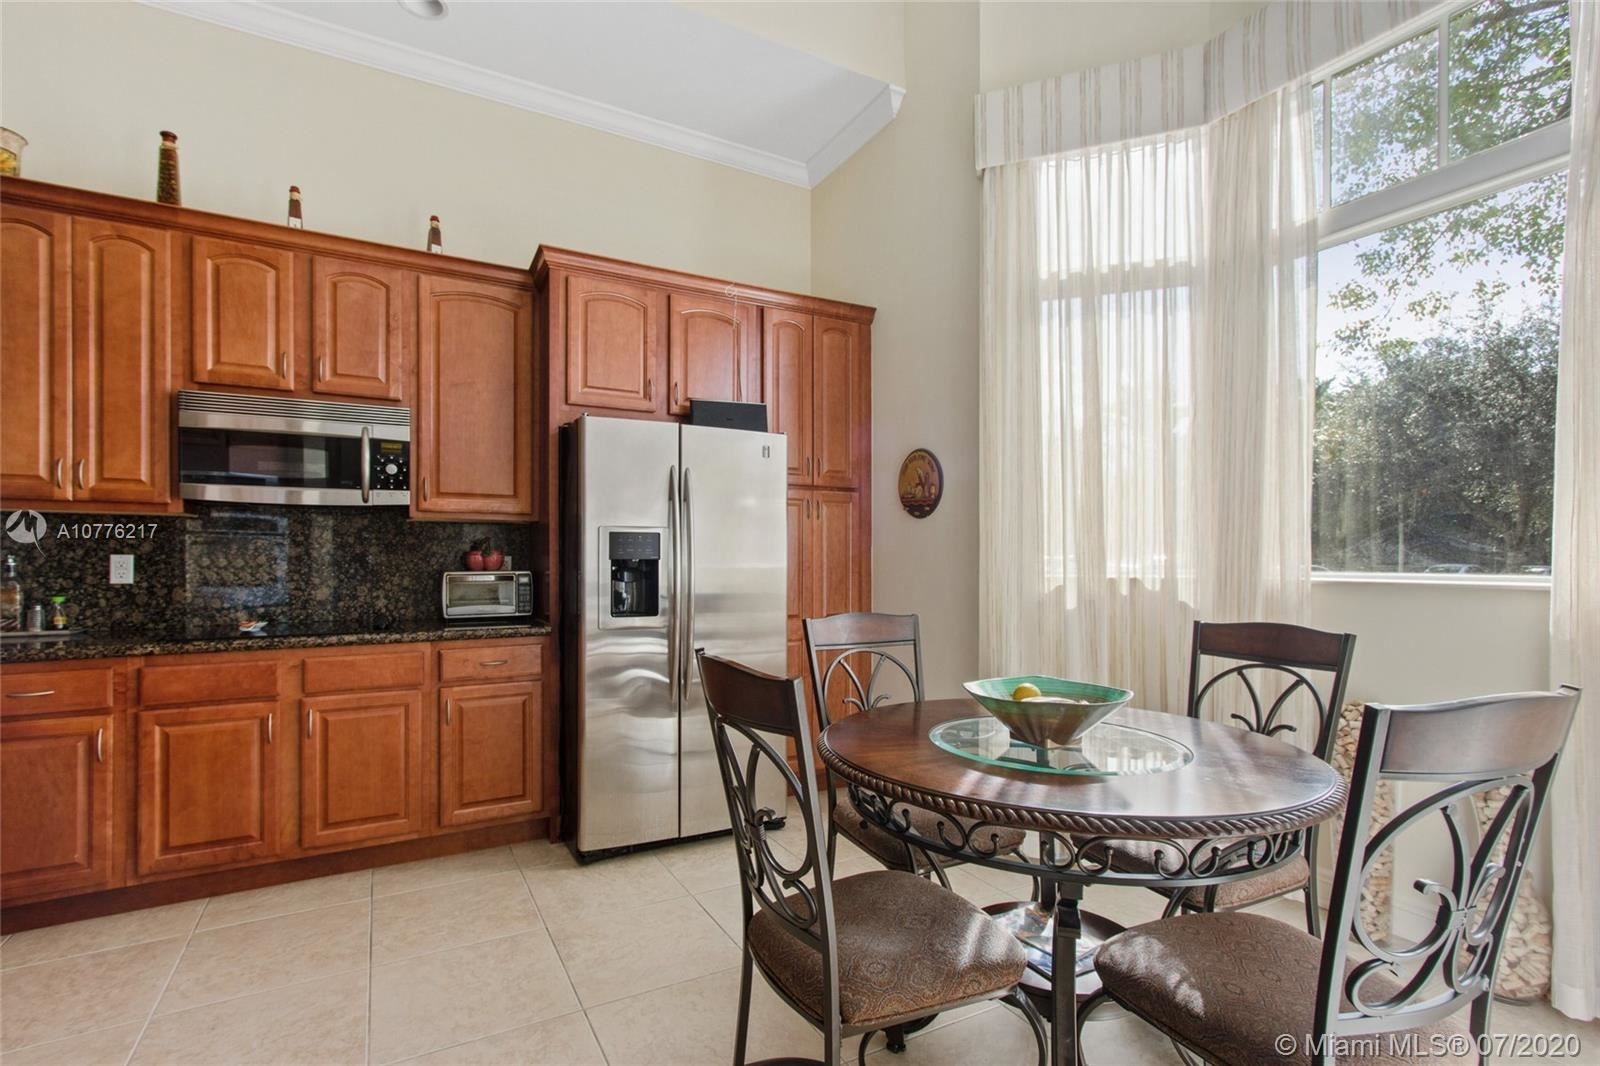 16102 Emerald Estates Dr #109, Weston, FL 33331 - #: A10776217